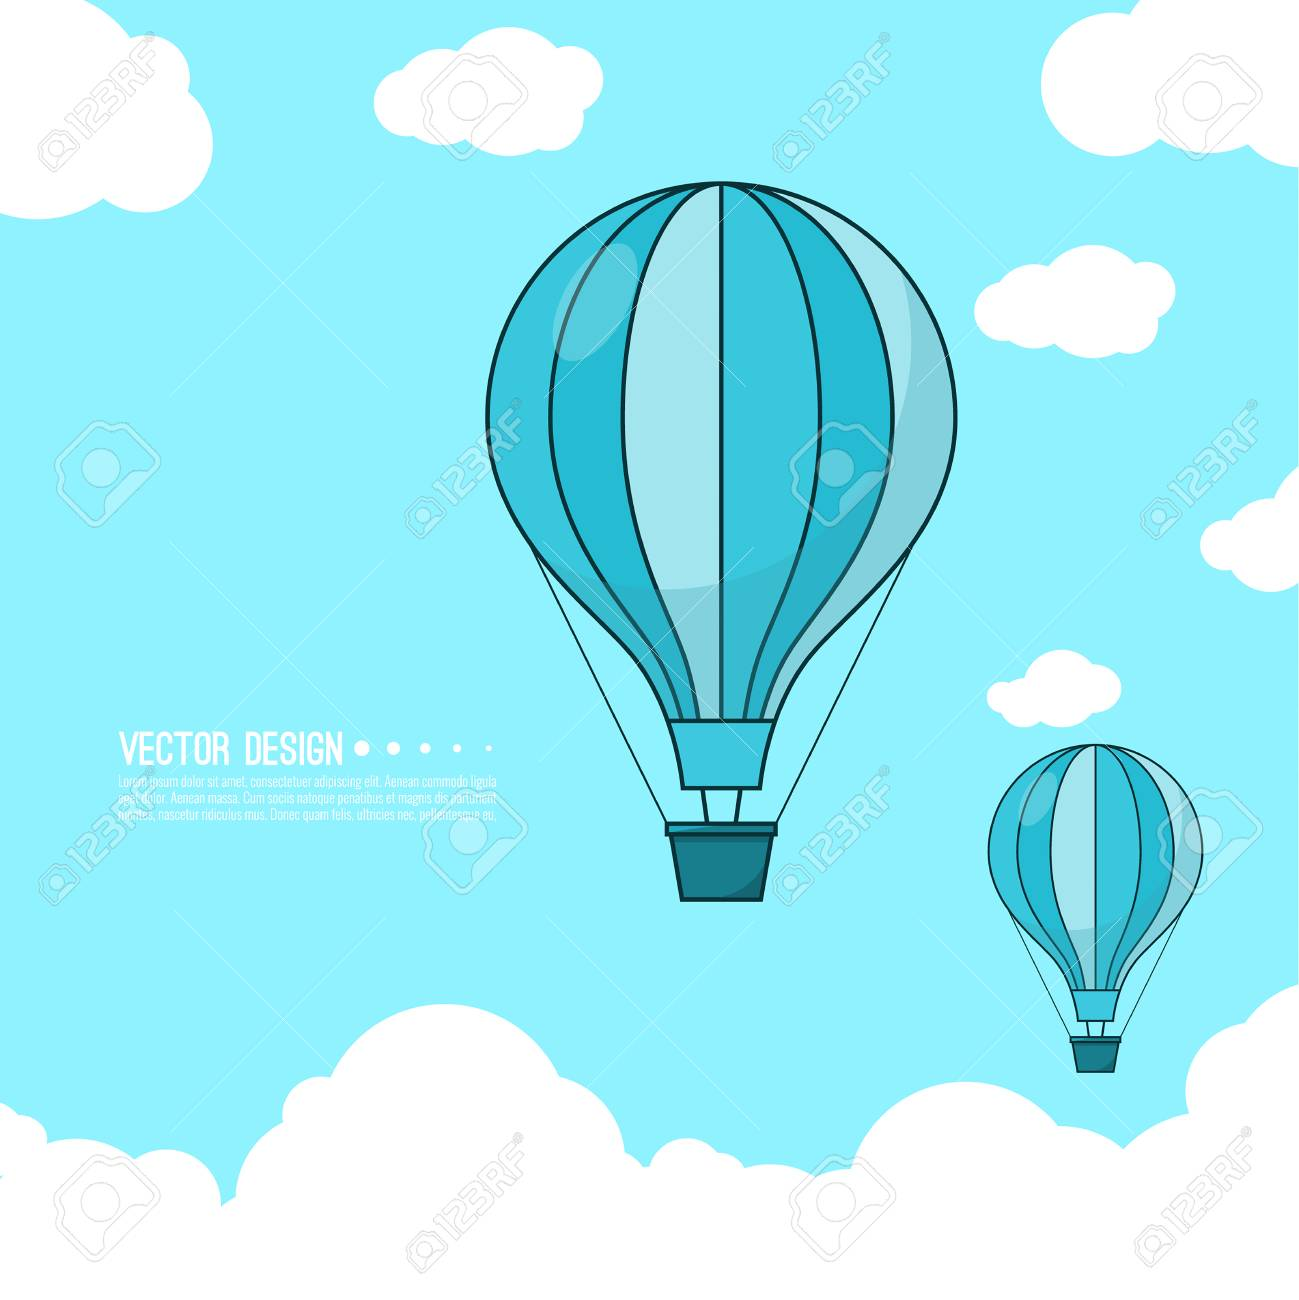 Hot Air Balloon Template Royalty Free Cliparts, Vectors, And Stock ...